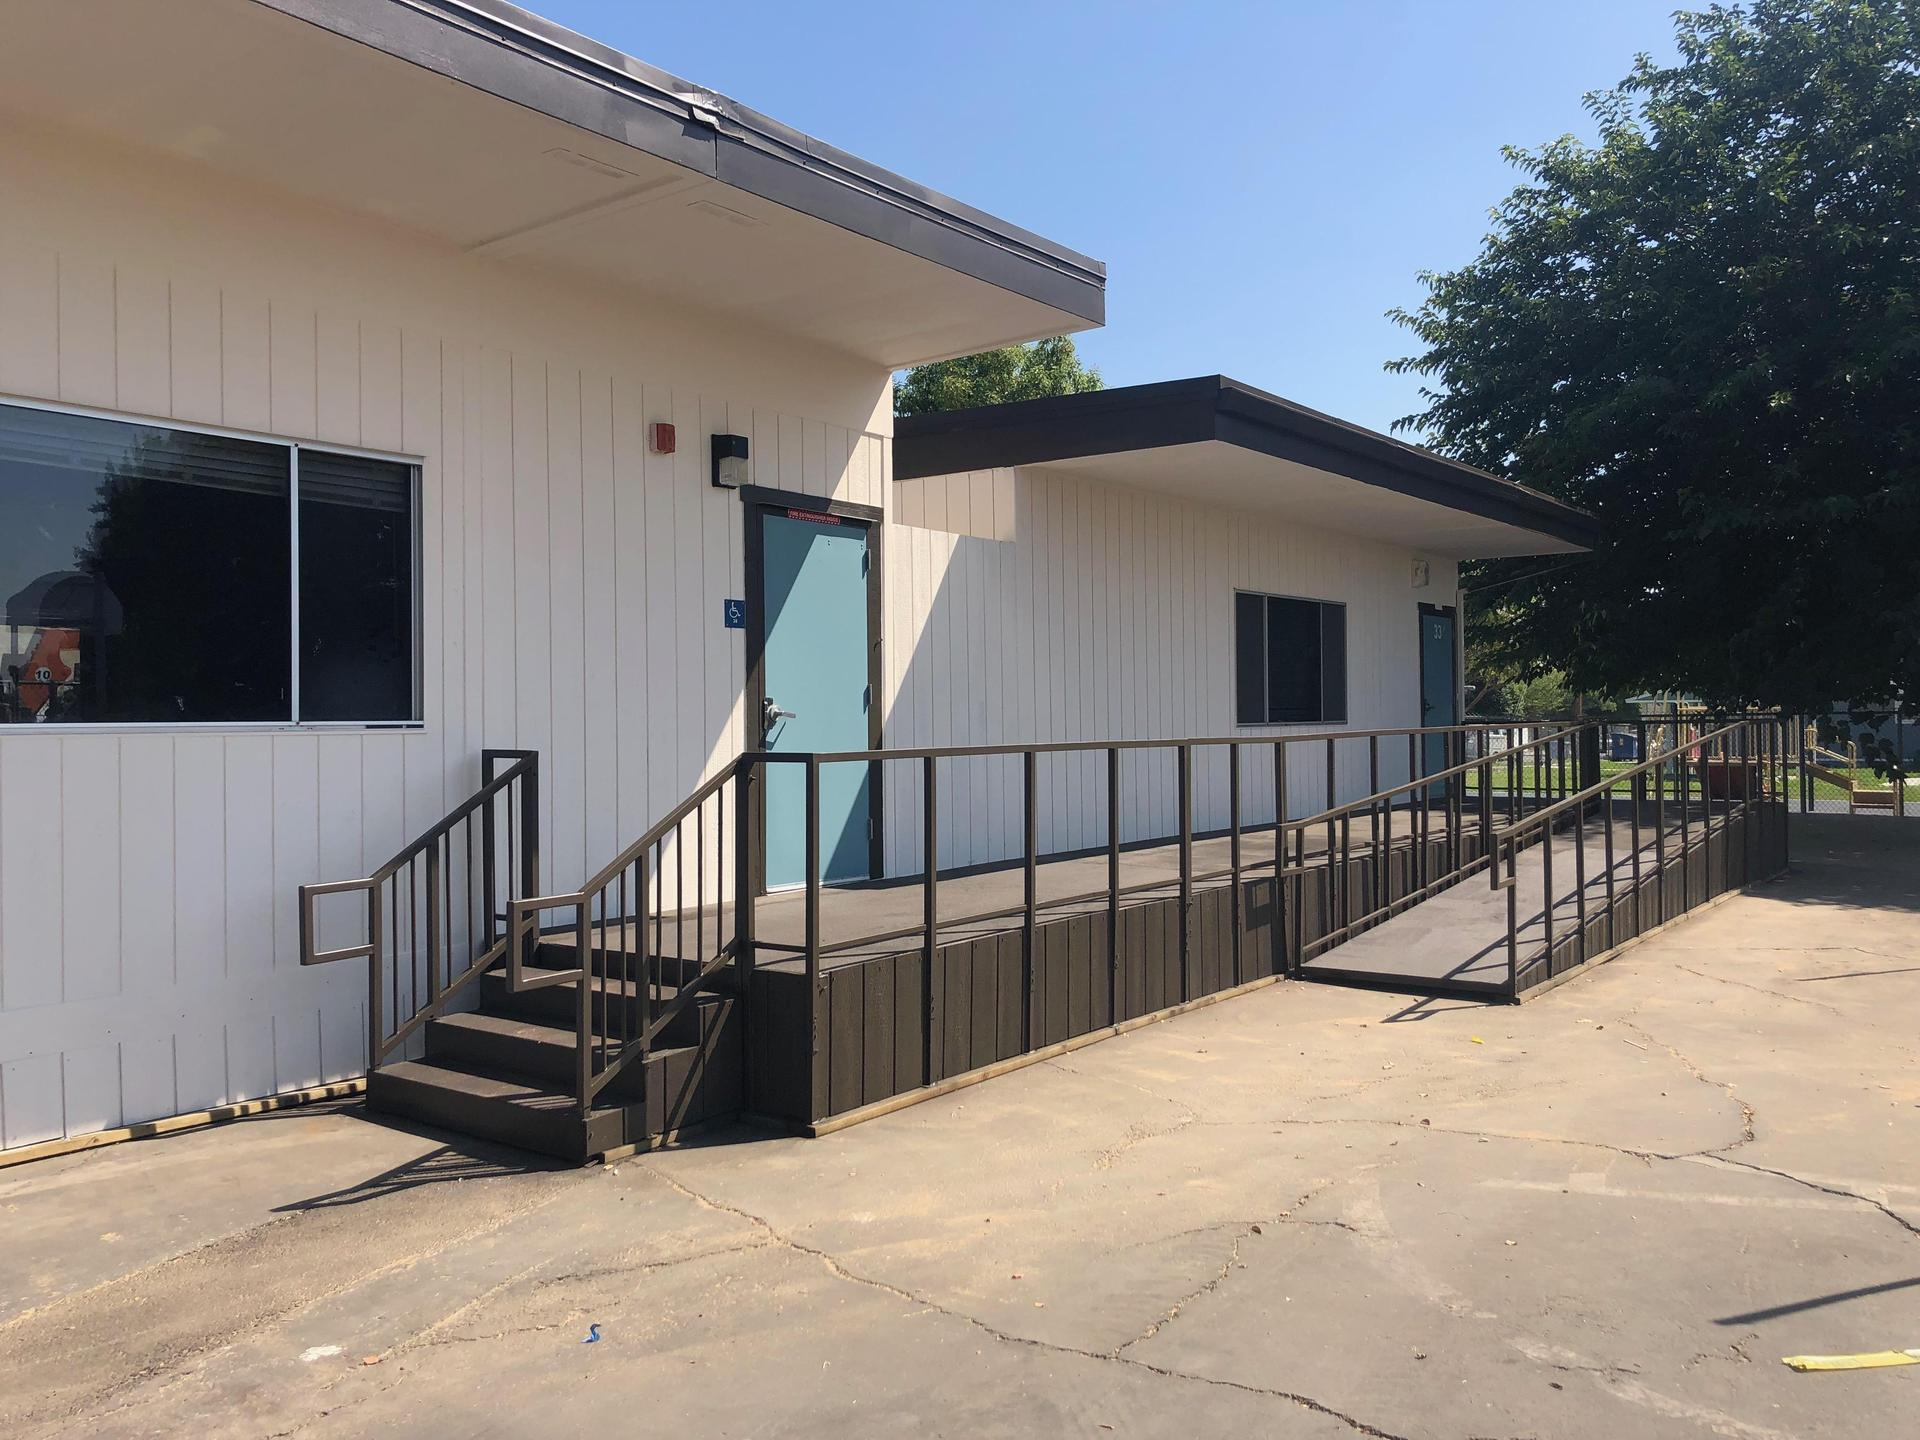 New ramps on our portable classroom